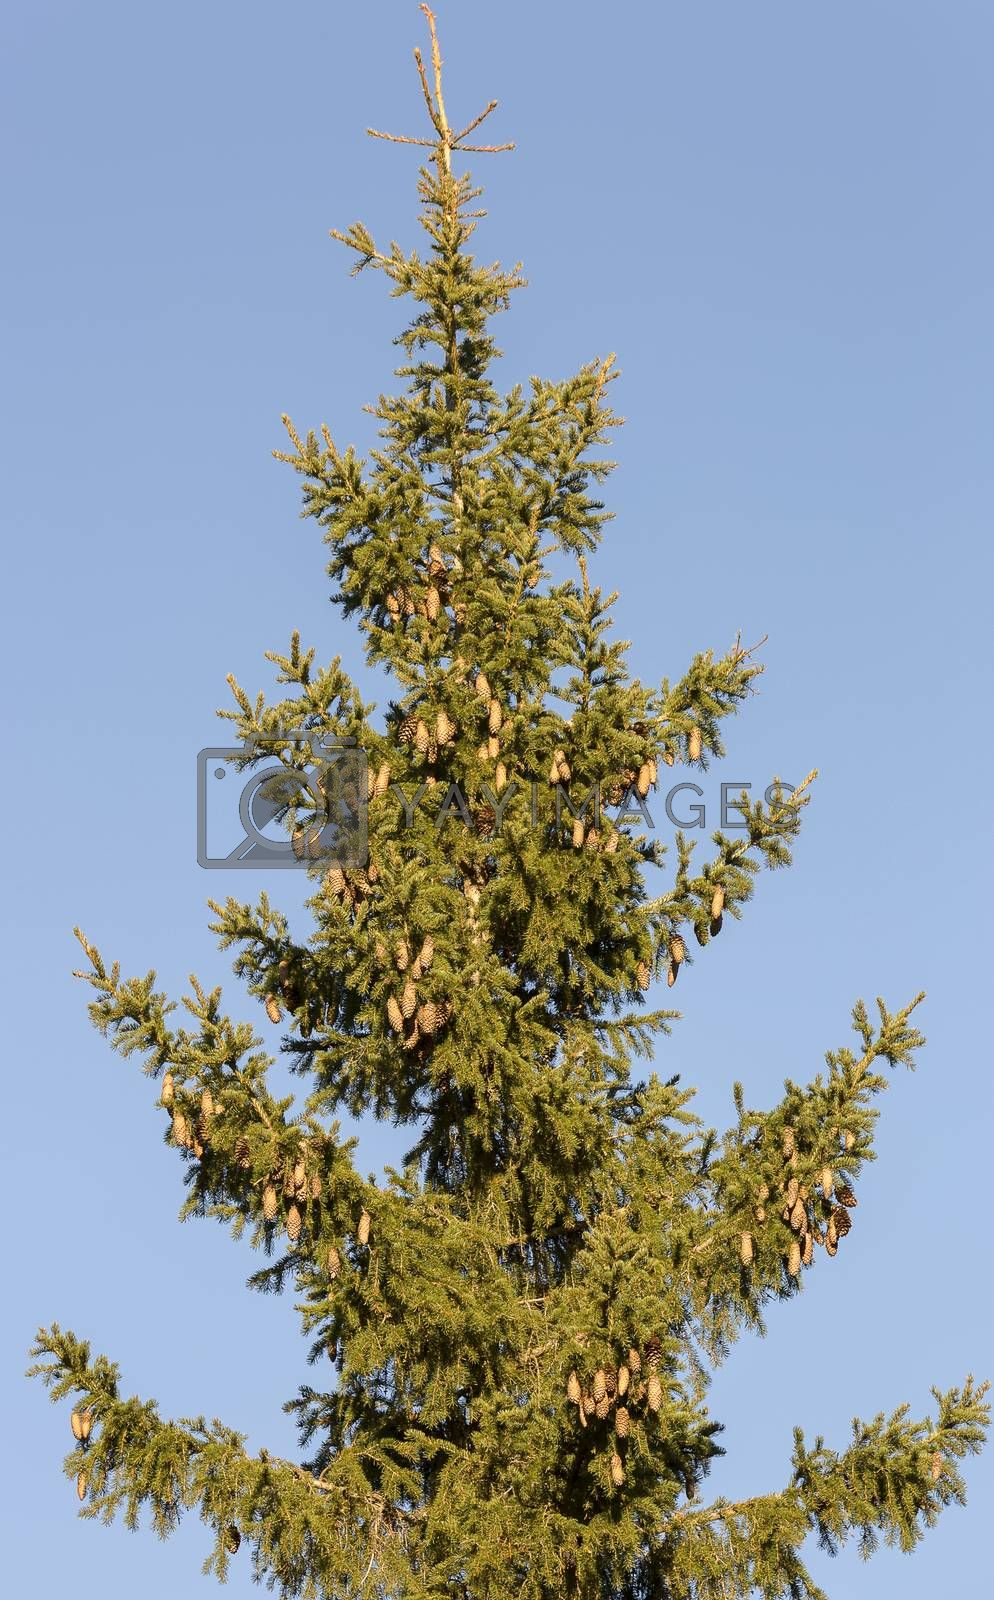 Top of Spruce Tree by Emmoth